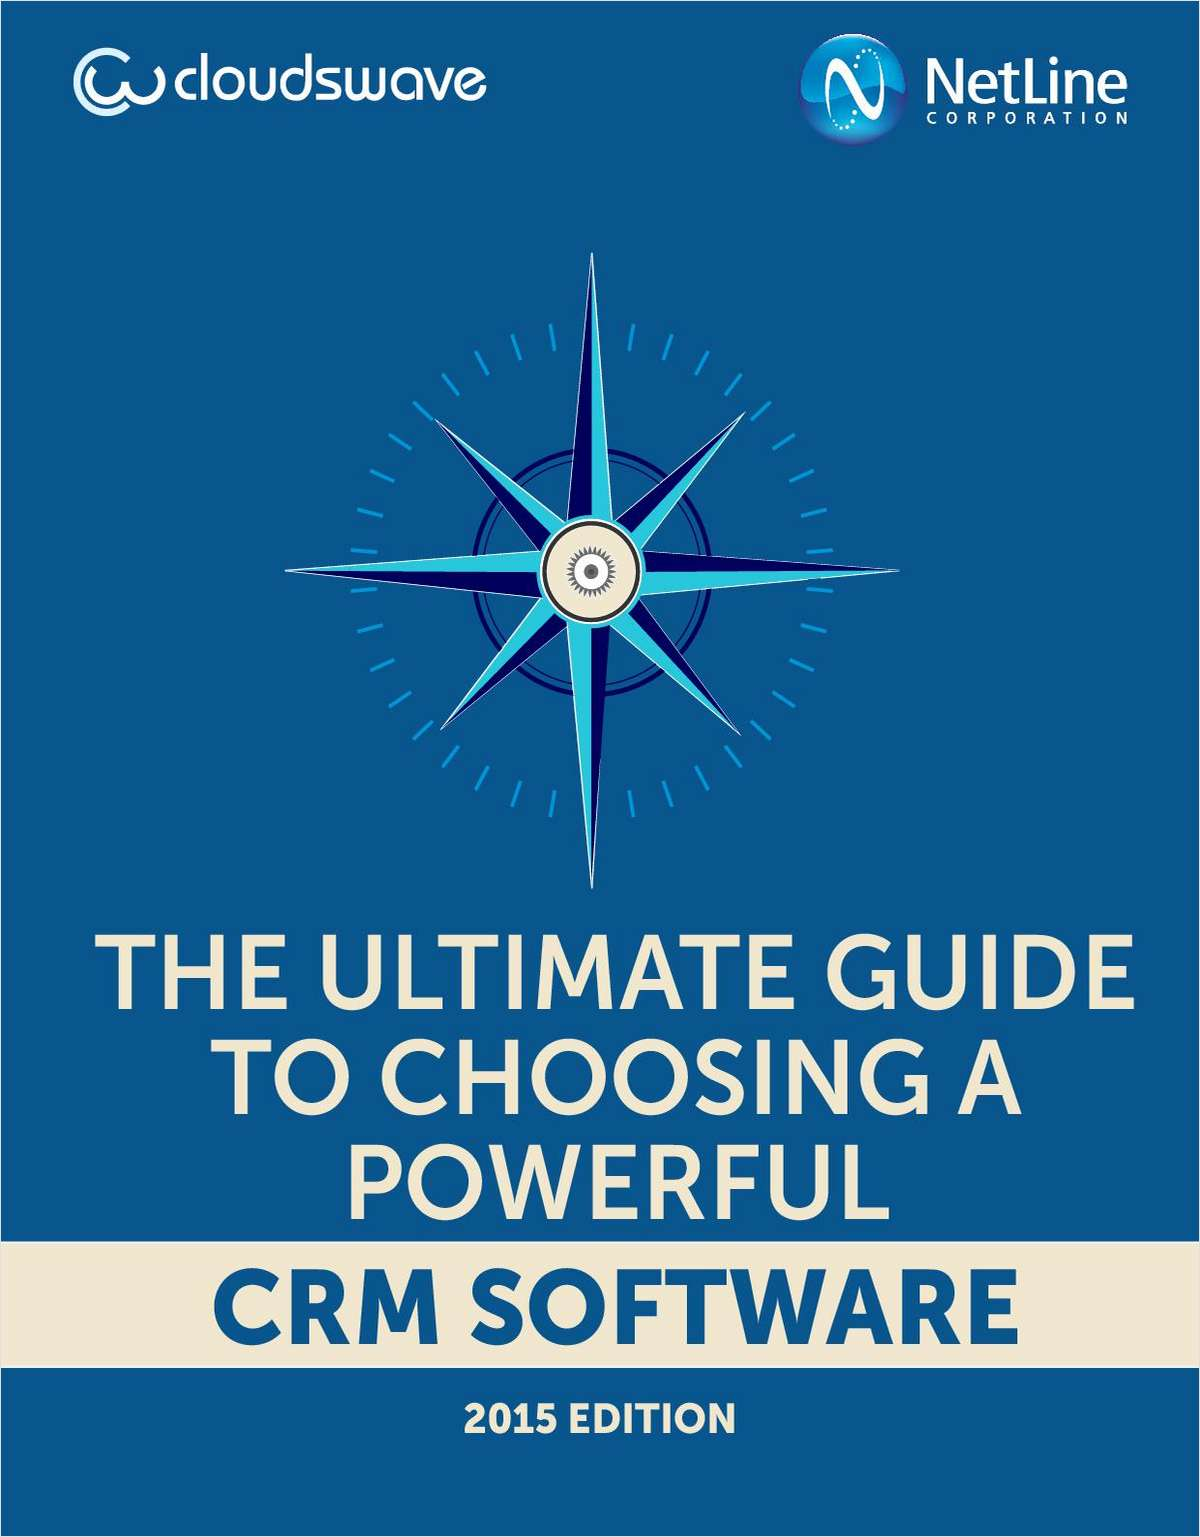 The Ultimate Guide to Choosing A Powerful CRM Software: 2015 Edition